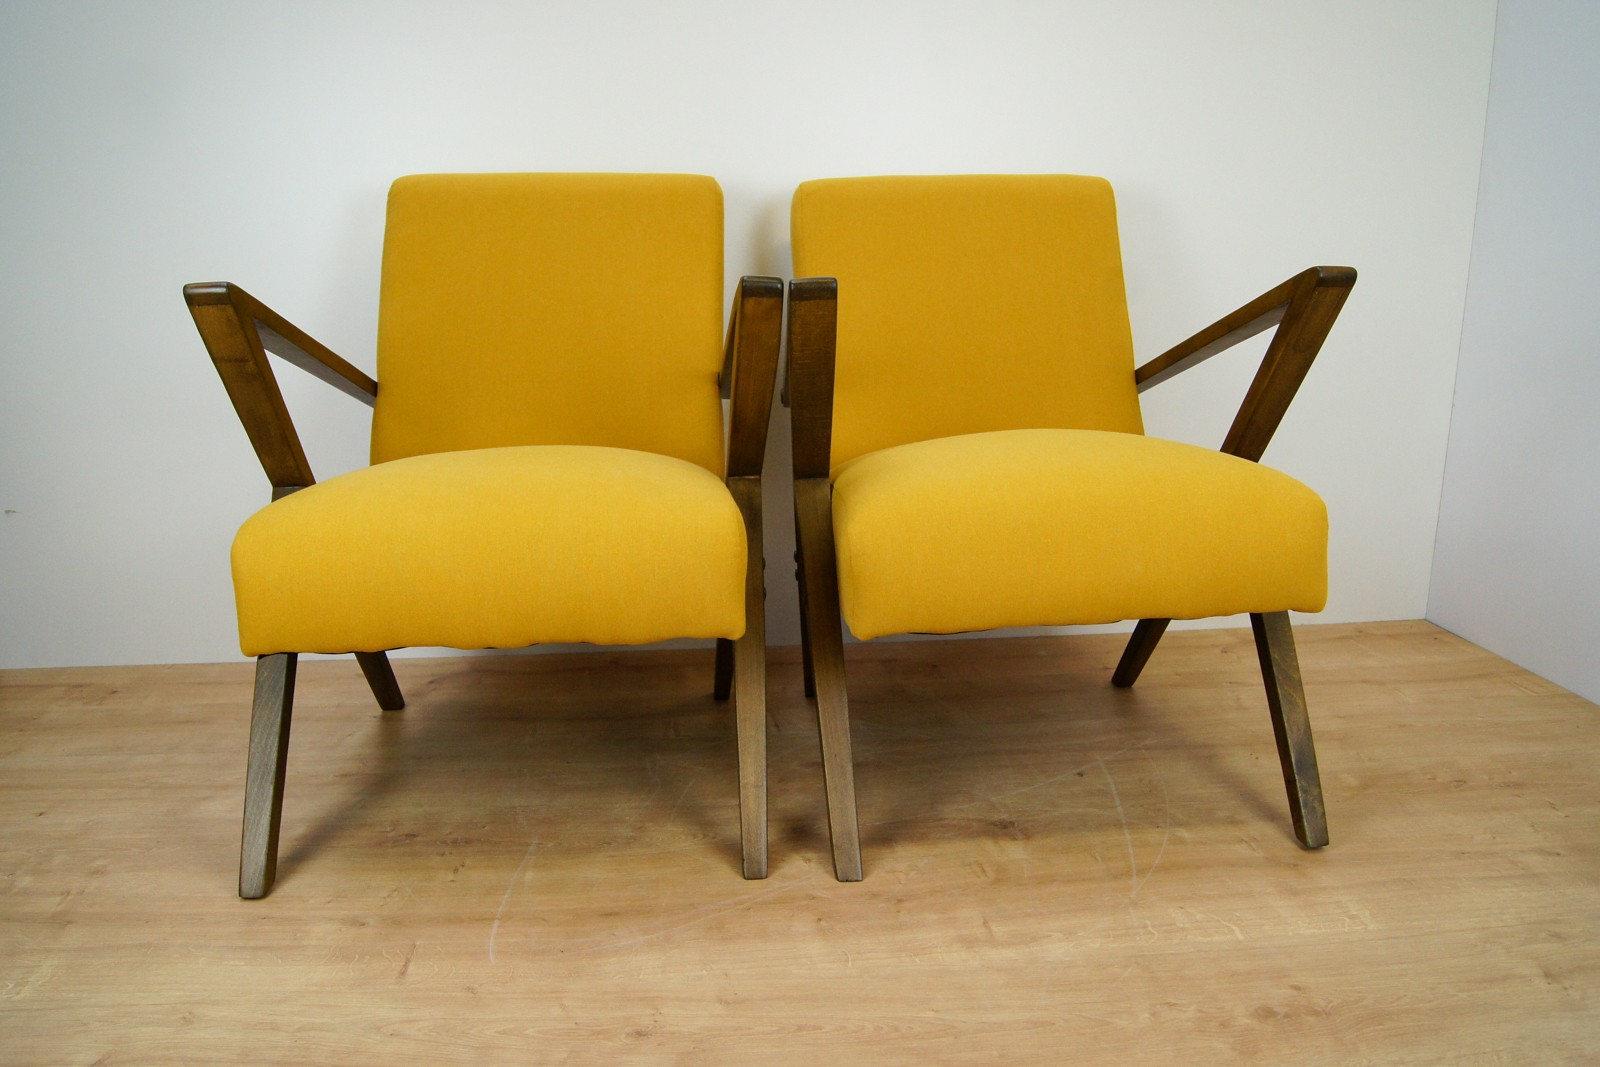 vintage-pair-of-polish-armchairs-from-bydgoszcz-cooperative-odnowa-1970s